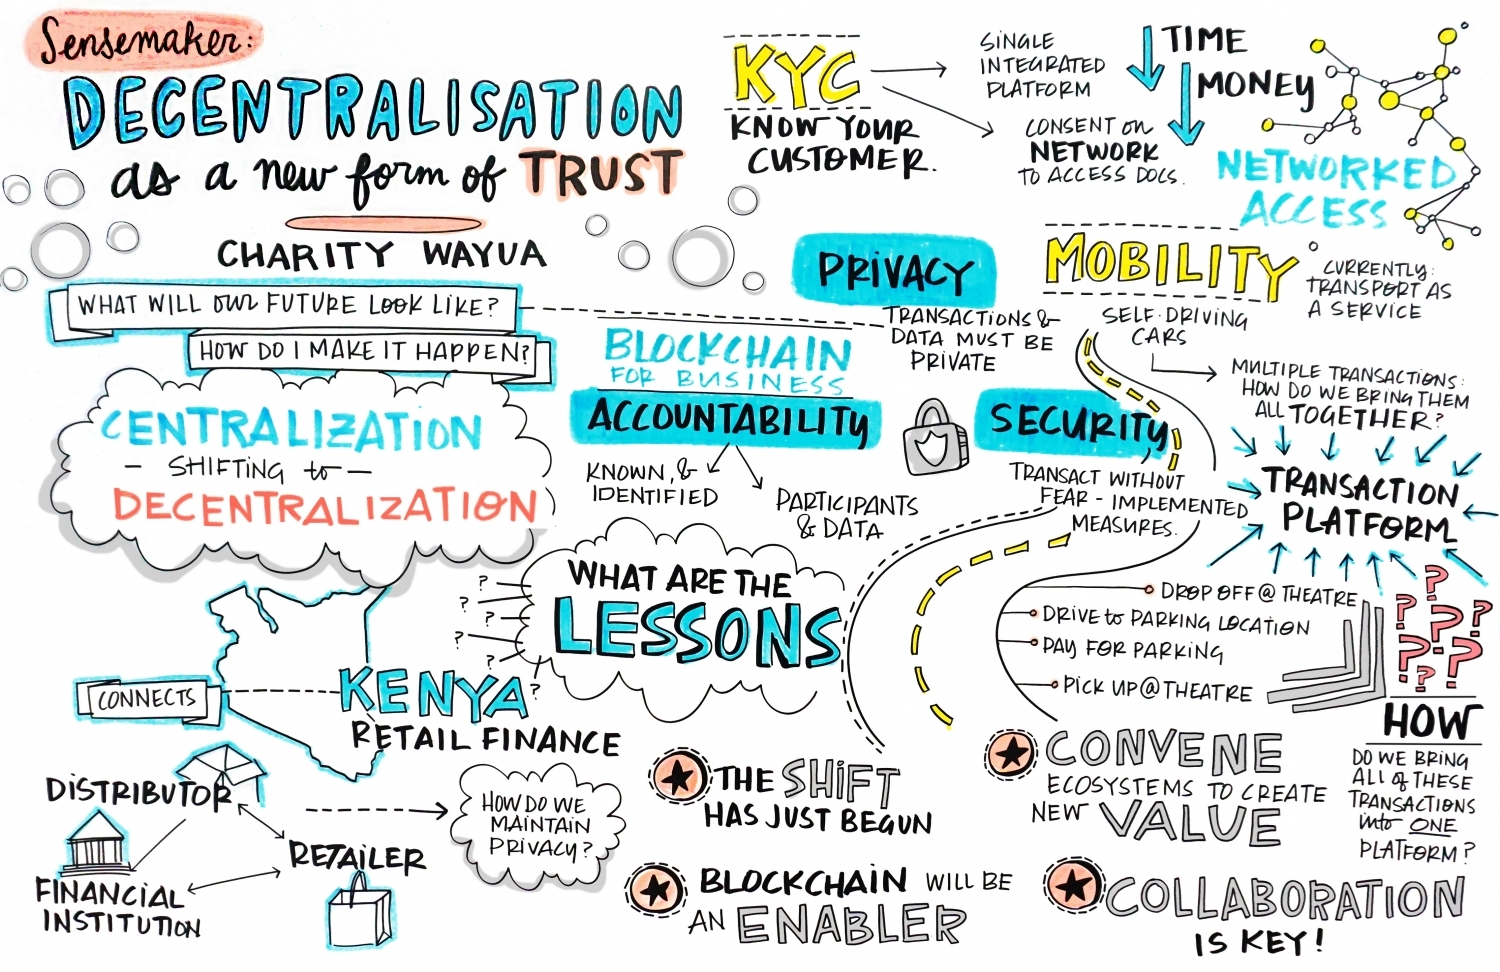 graphic recording facilitation creativity conferences conference financial services banking blockchain graphics consultants communication